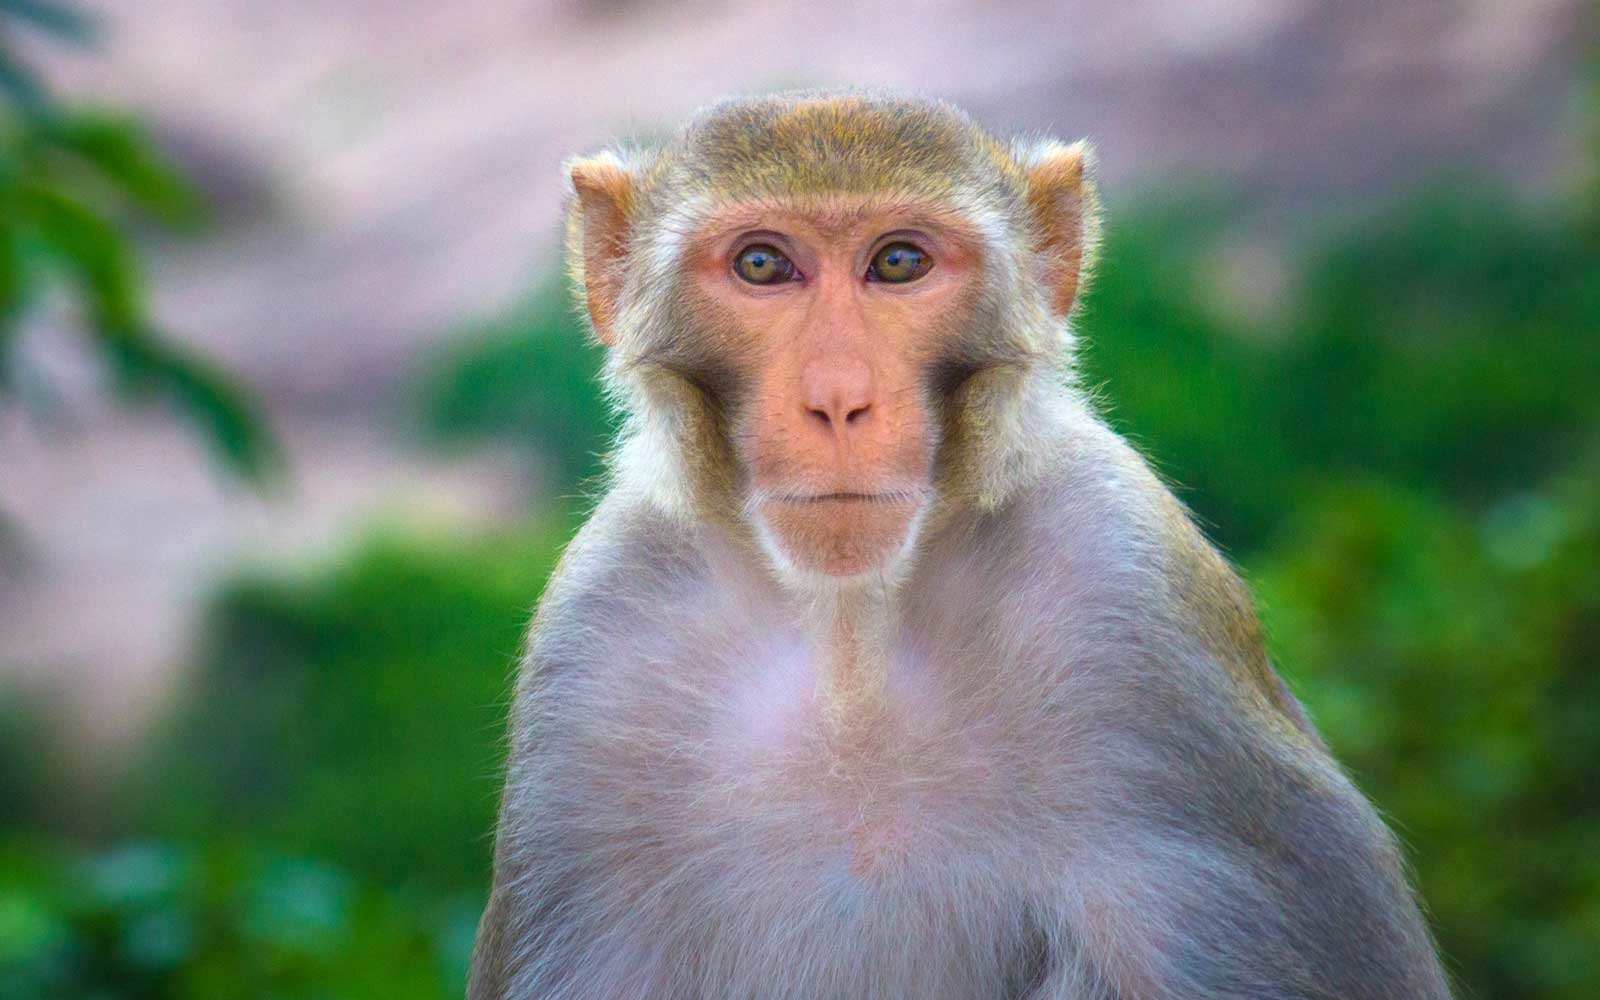 A Monkey Escaped Its Crate And Ran Around The San Antonio